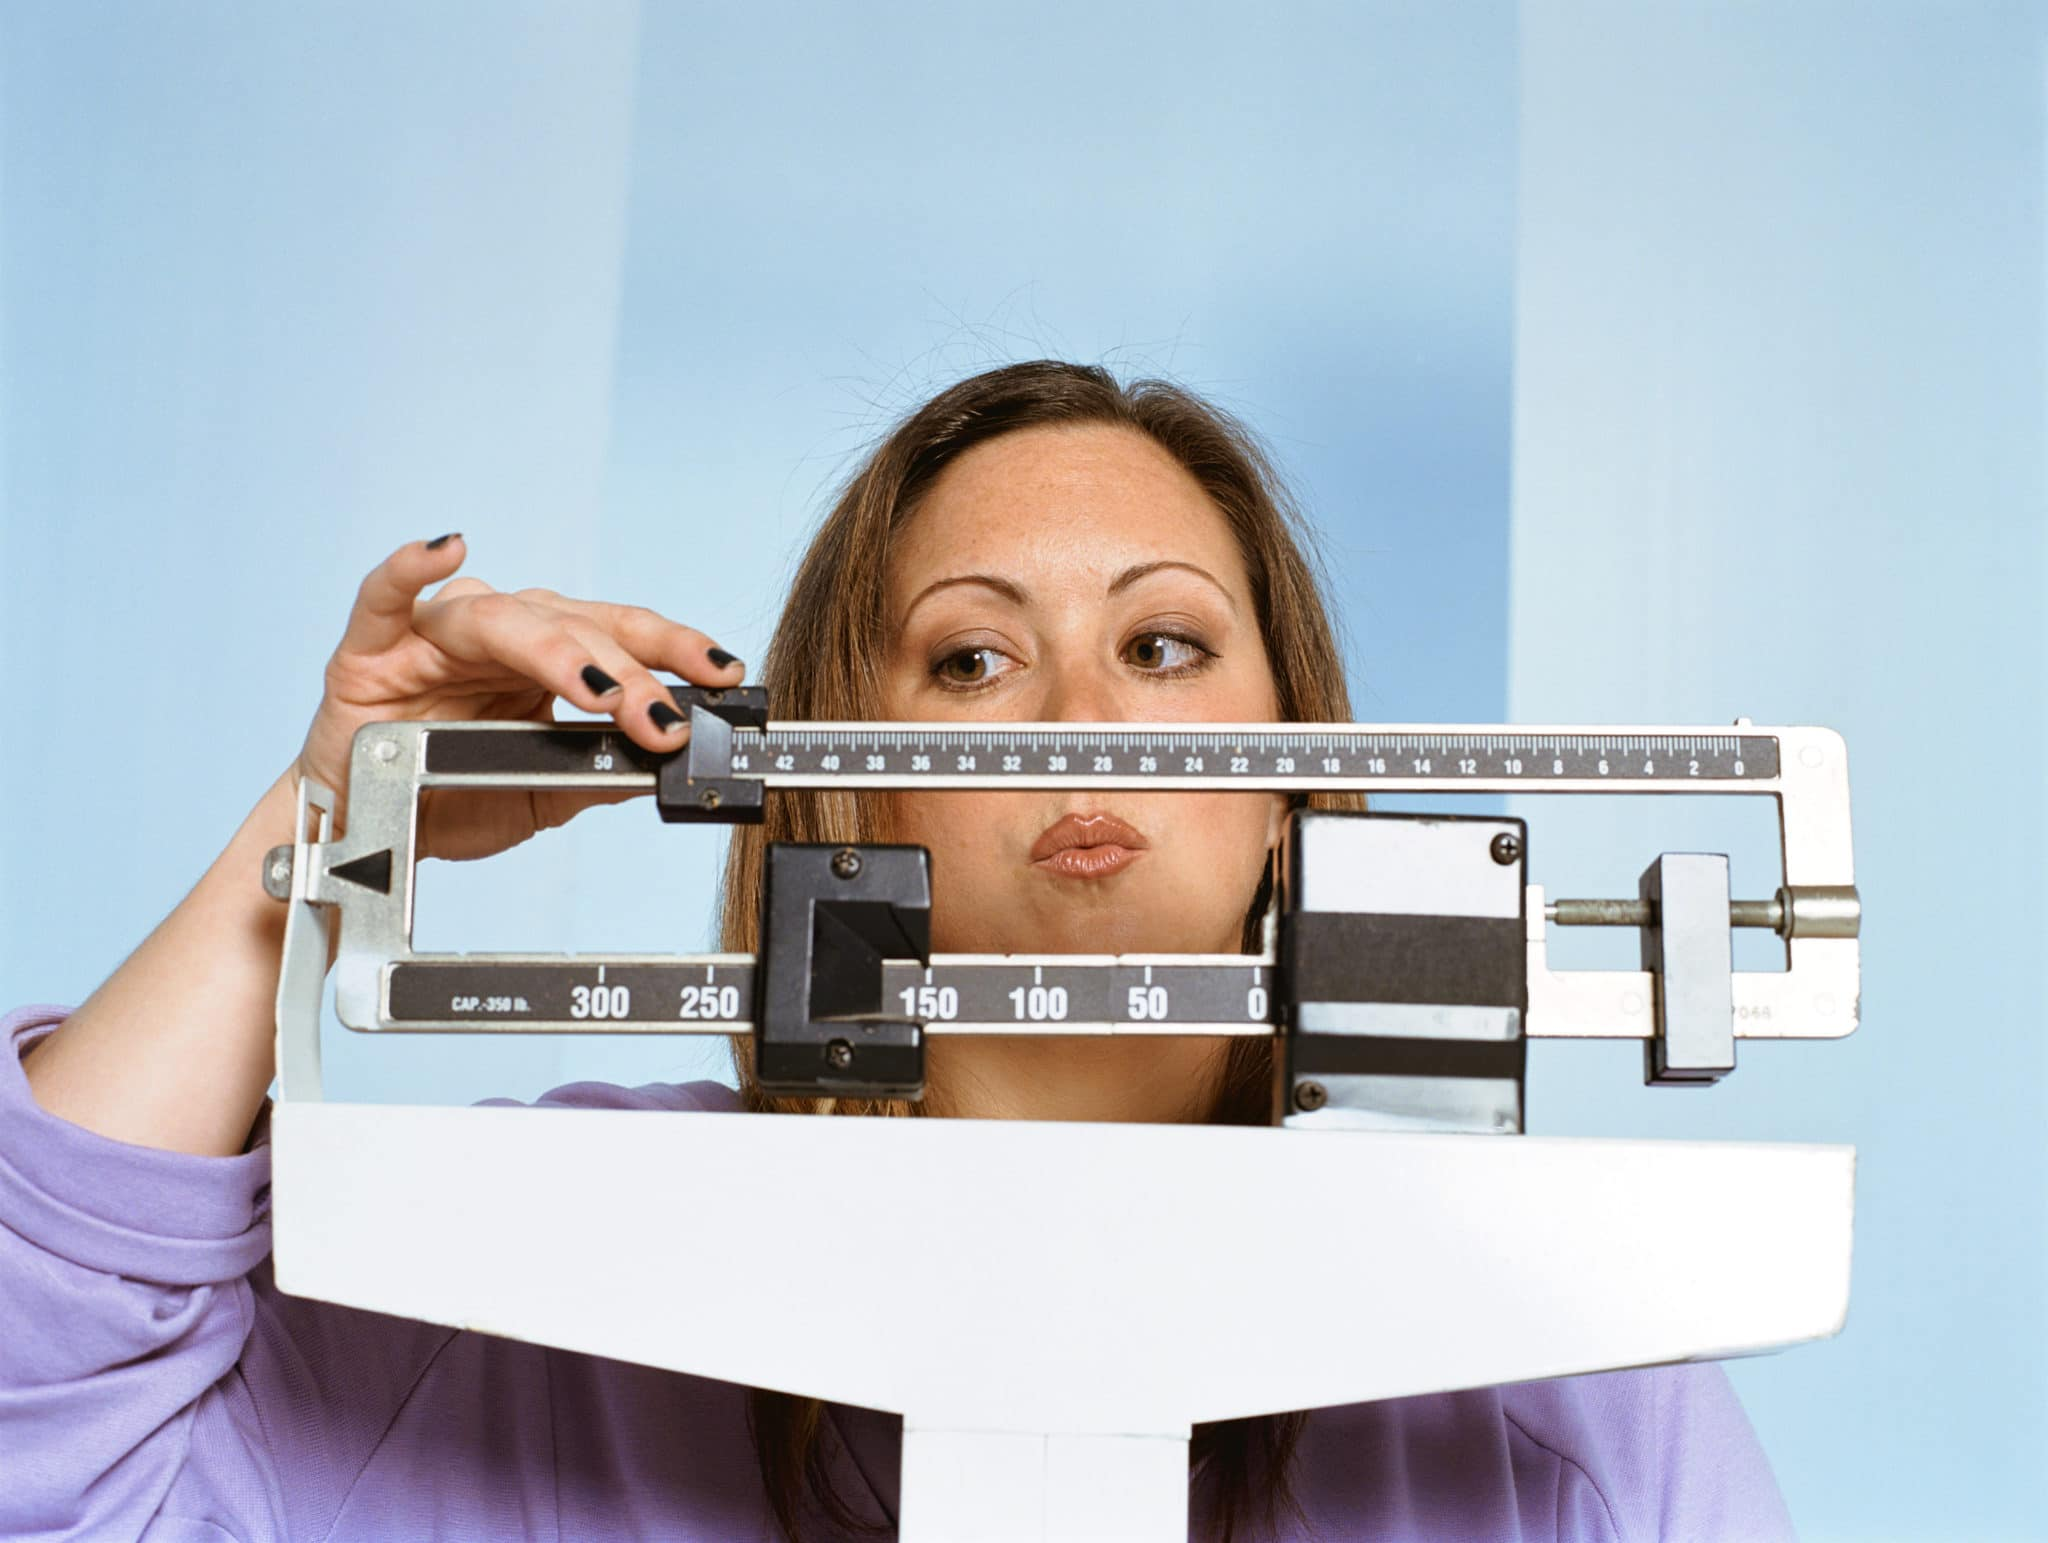 Tipping the Scales with a Single Thought